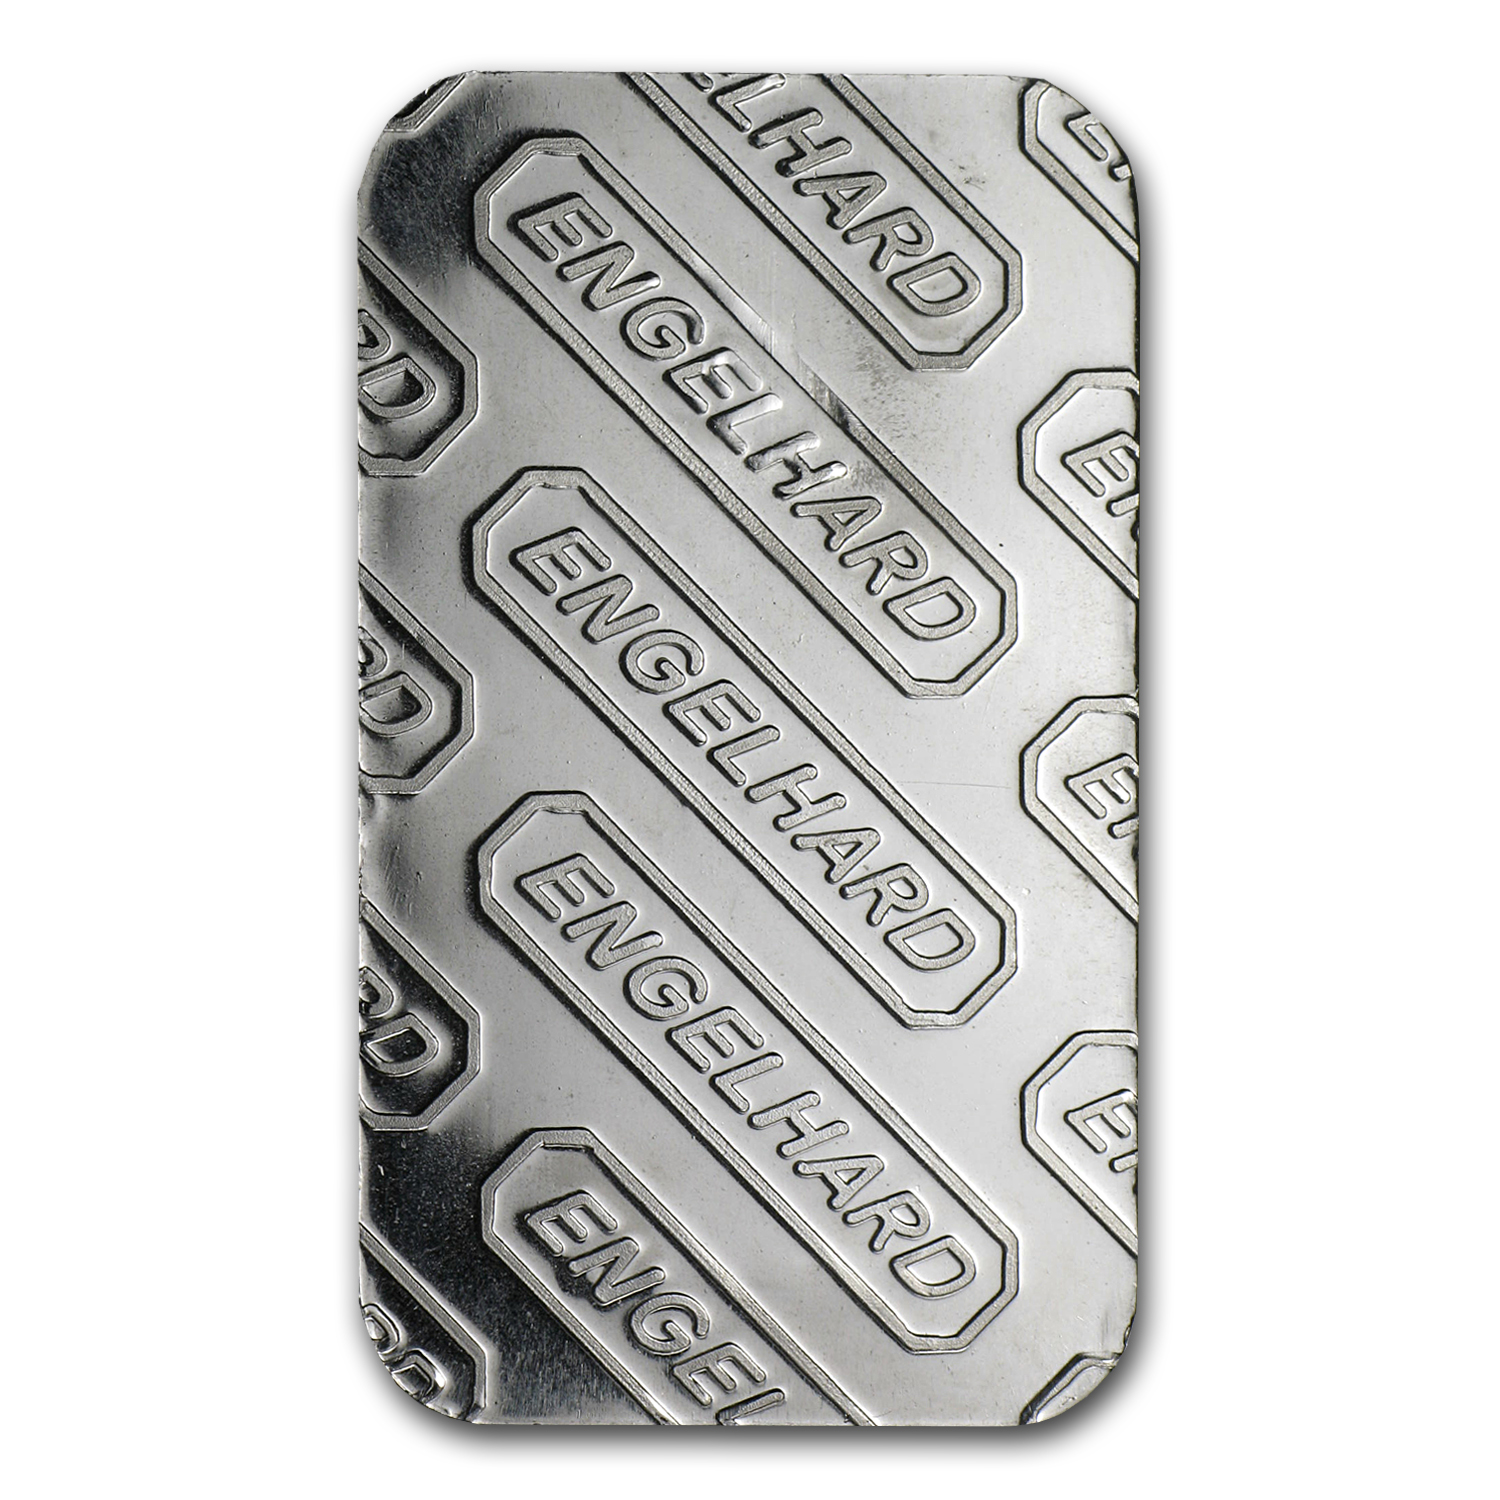 1 oz Engelhard Platinum Bar .9995 Fine ('E' logo, No Assay)